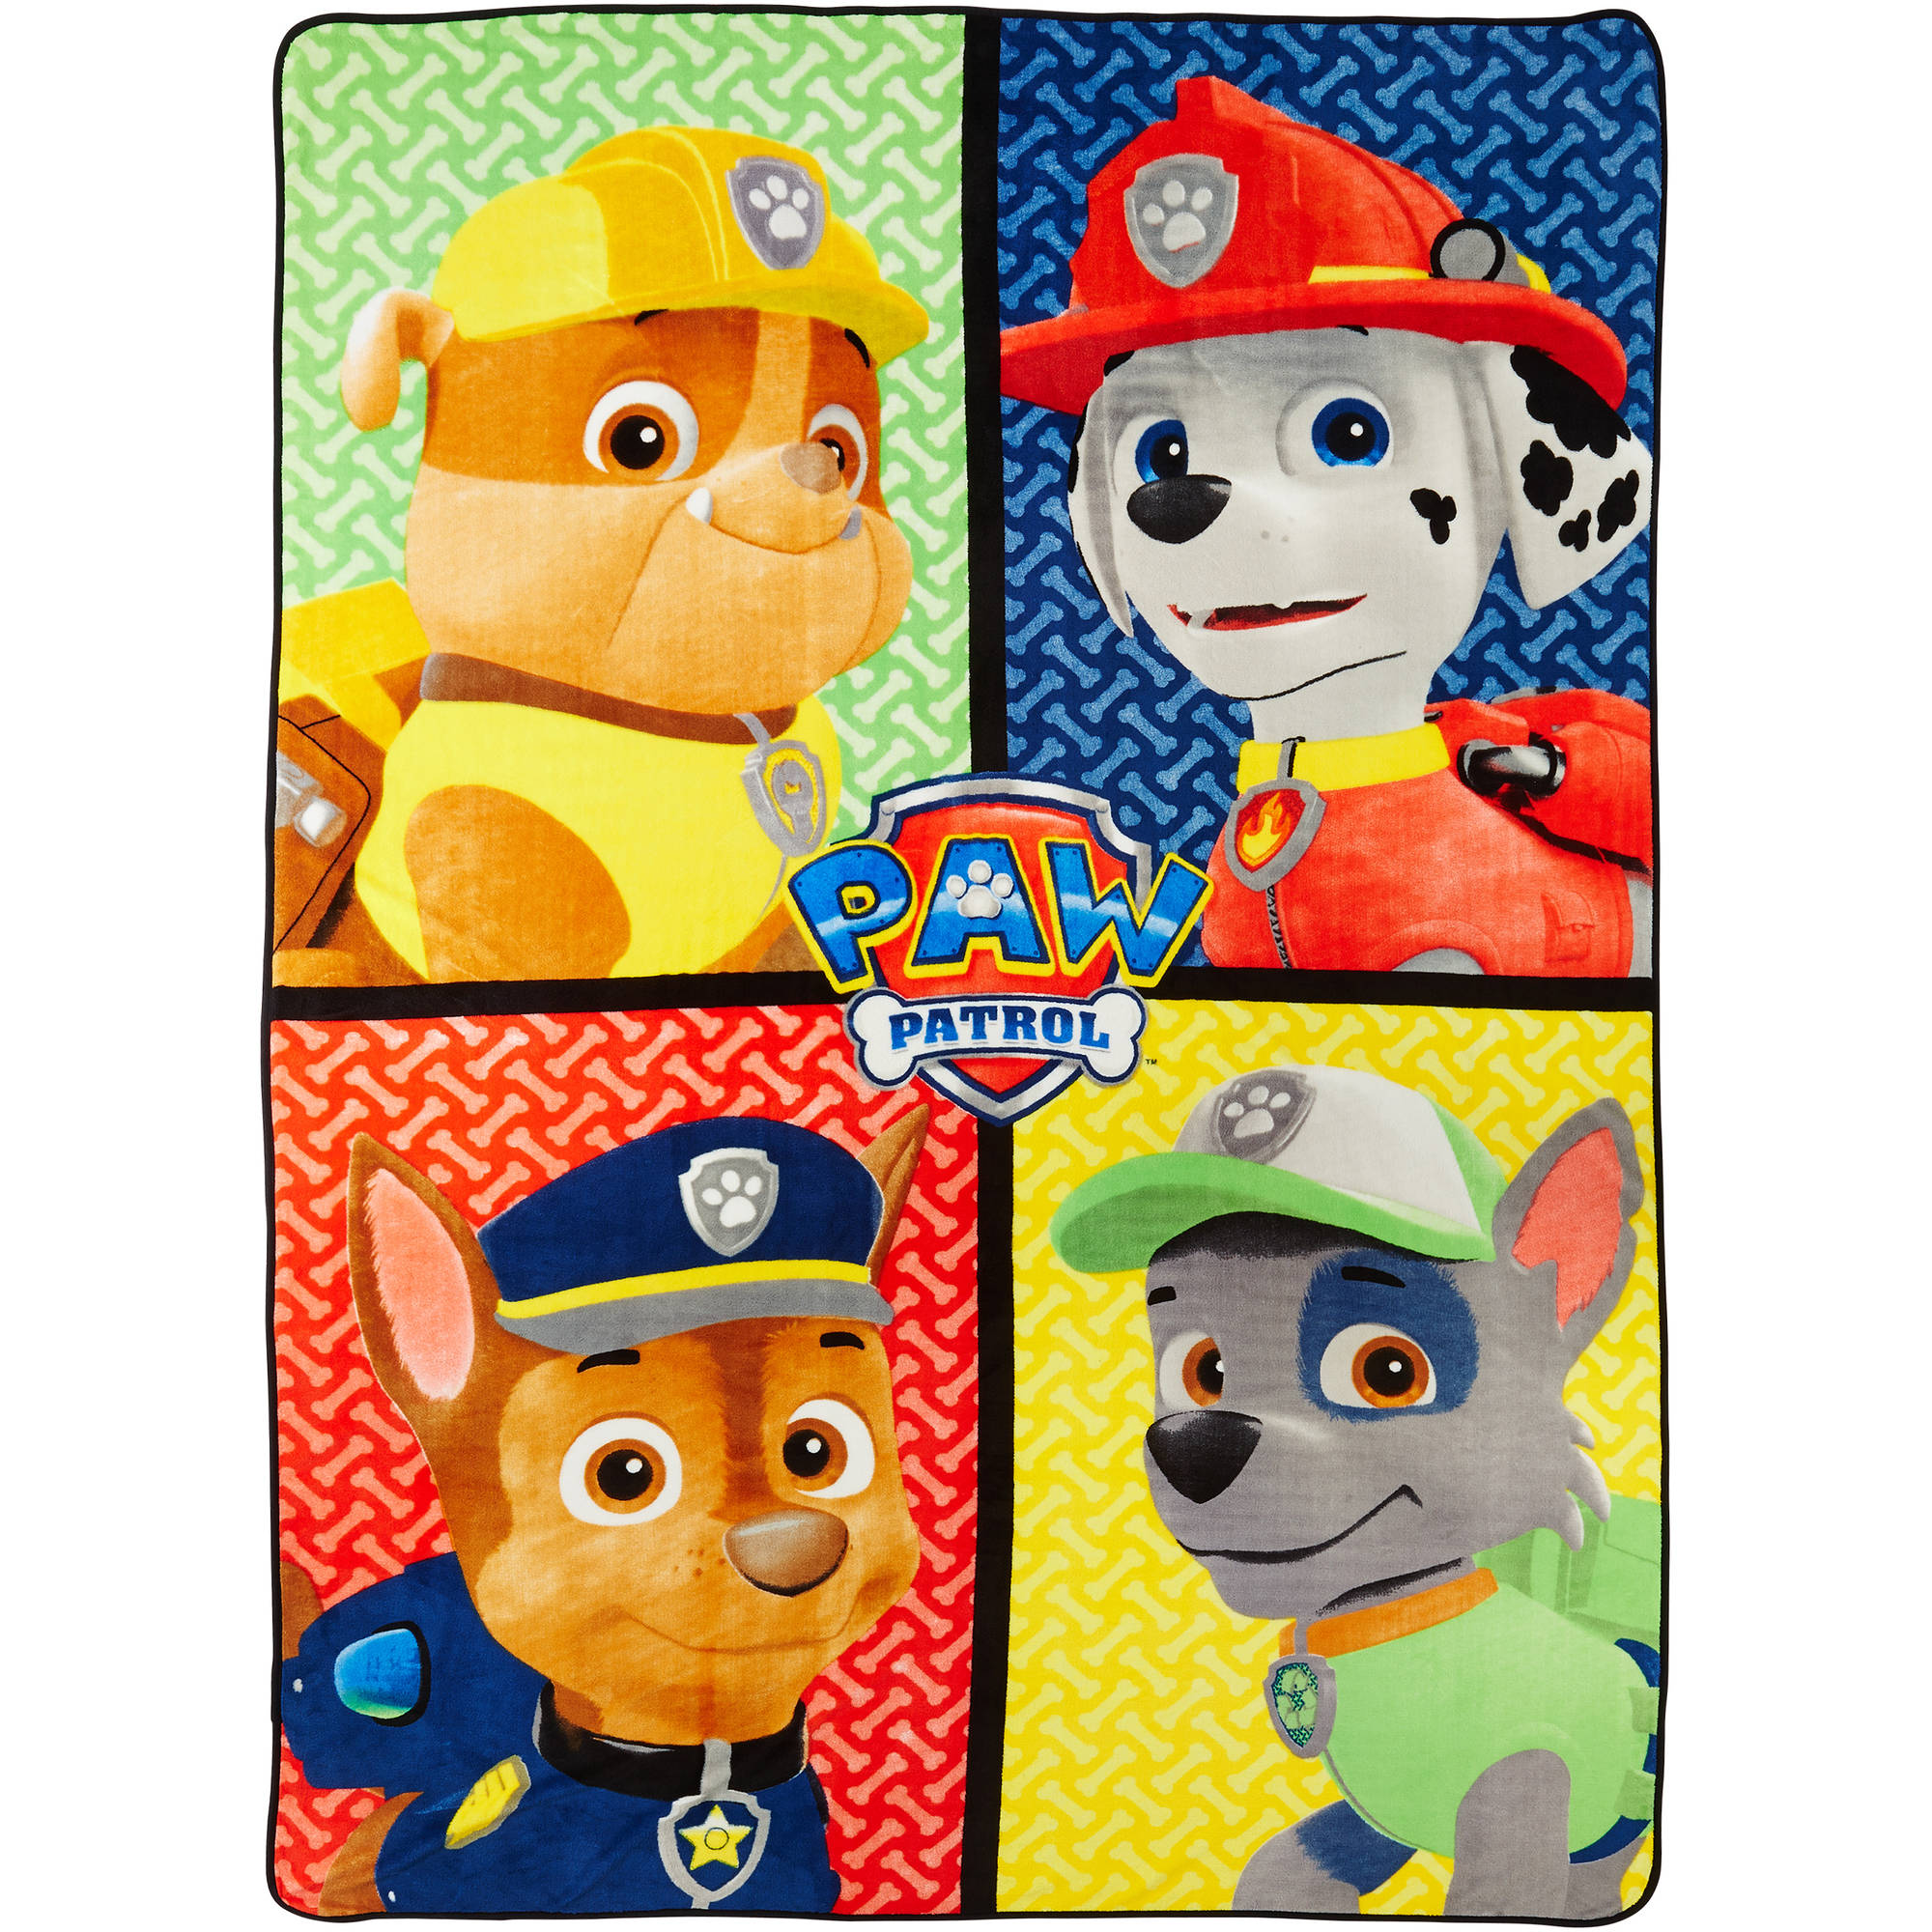 Nickelodeon S Puppy Pals Body Pillow Paw Patrol Polyester Sleeping